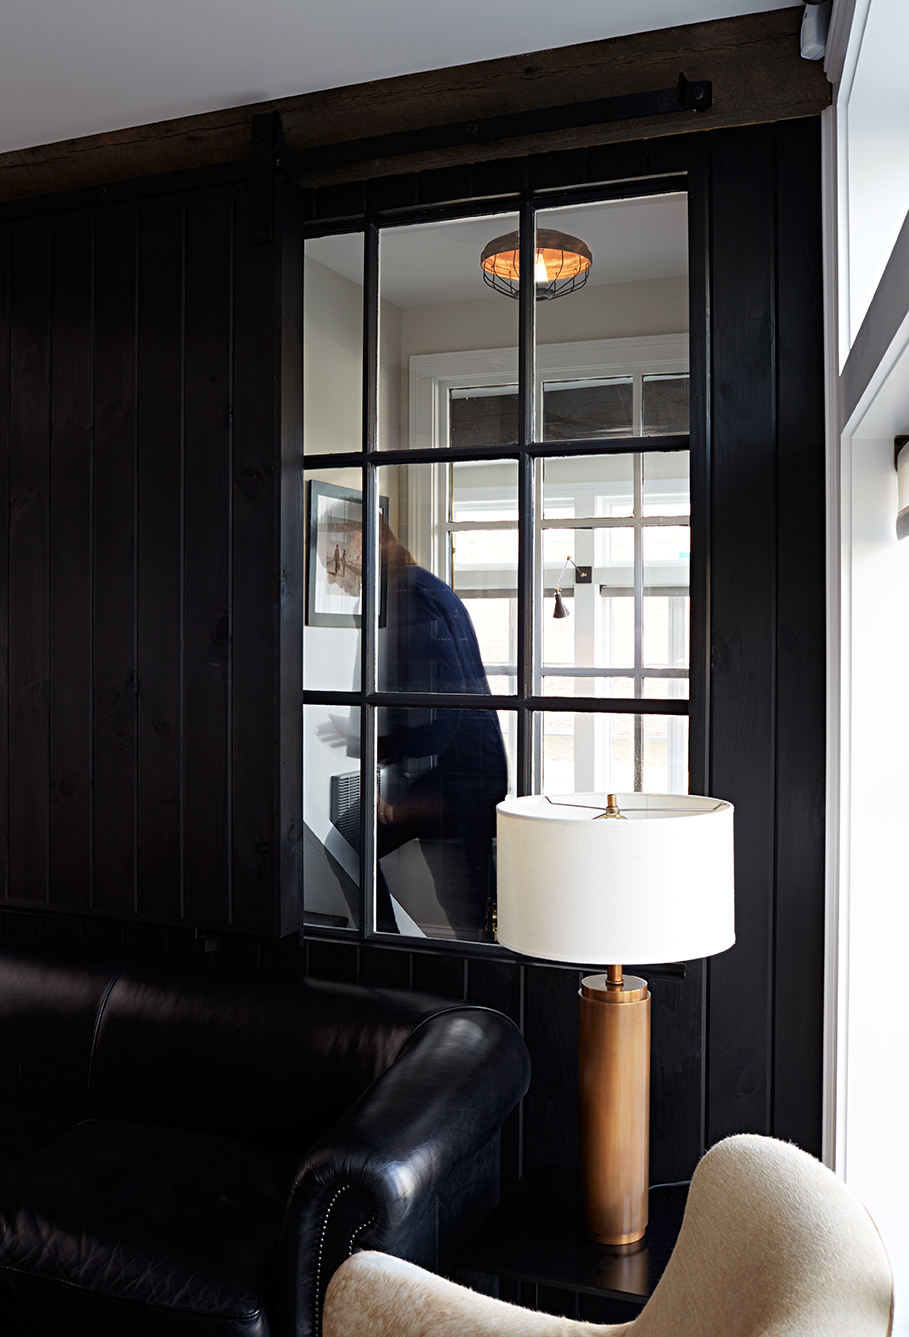 A cut-through window allows light and connection from The Restaurant into the Barroom, and the entrance to guest rooms in The 1820 Building.